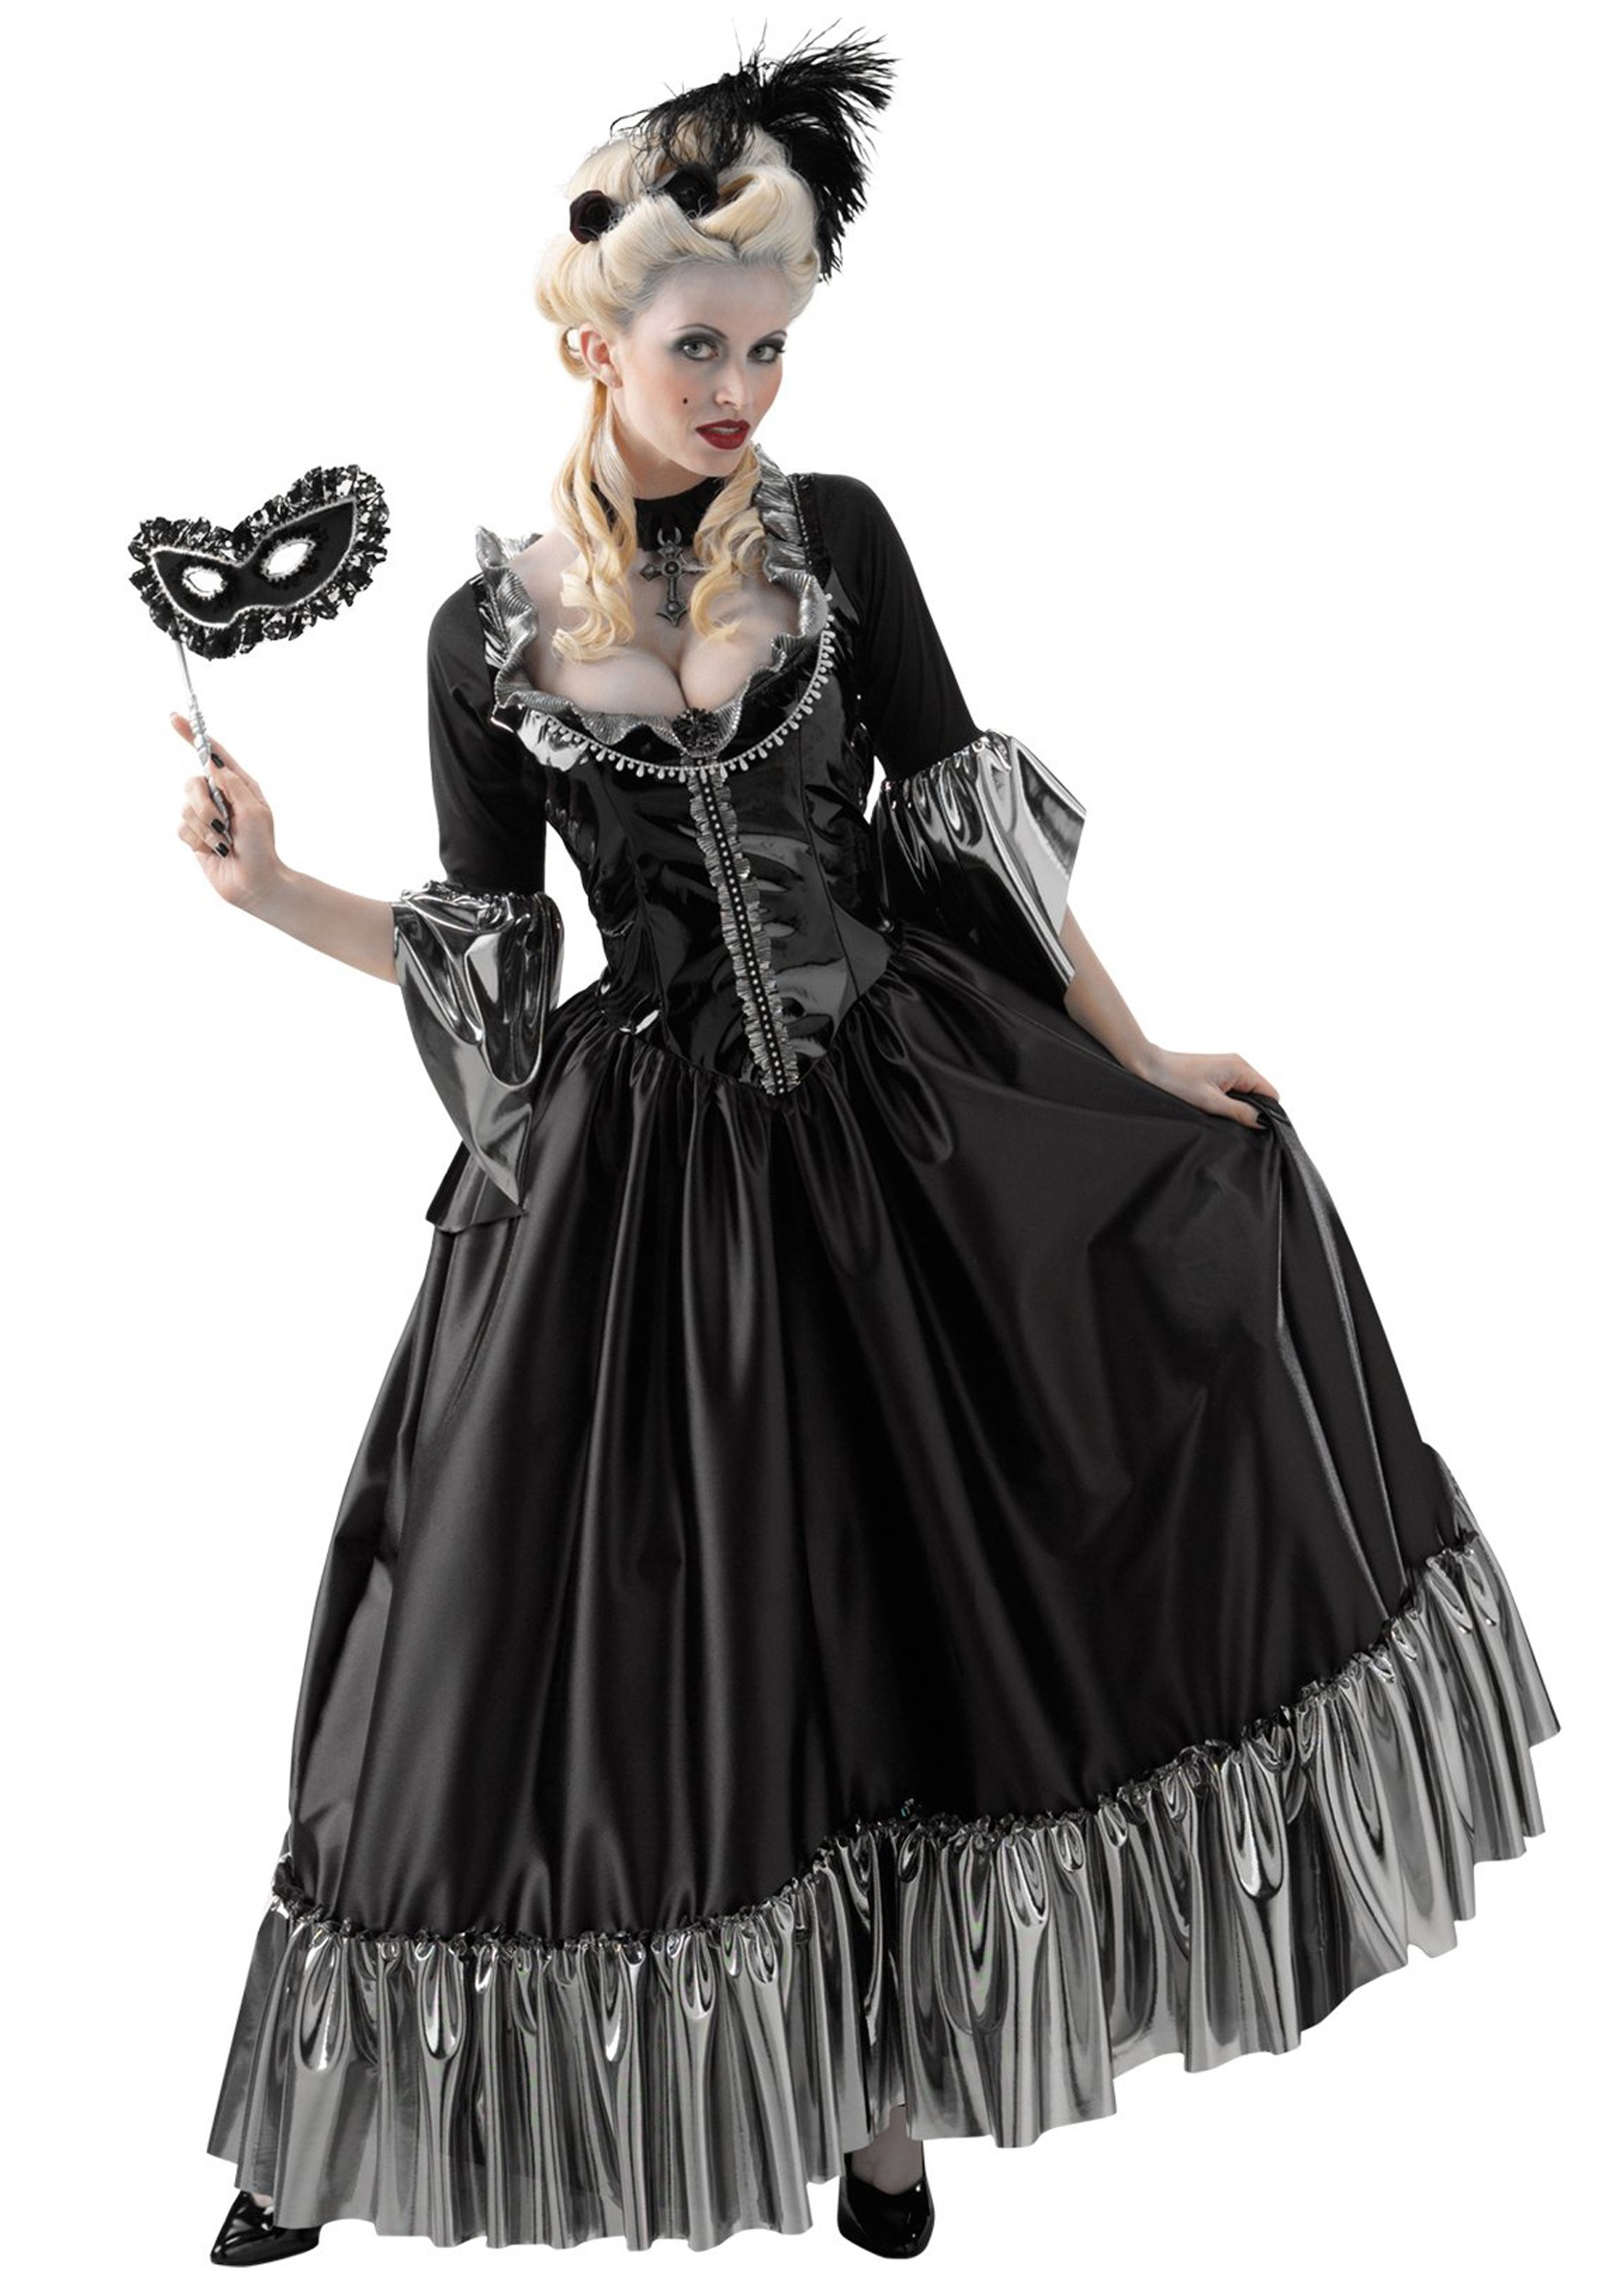 Masquerade Ball Costume  sc 1 st  Halloween Costumes & Masquerade Ball Costume - Halloween Costumes